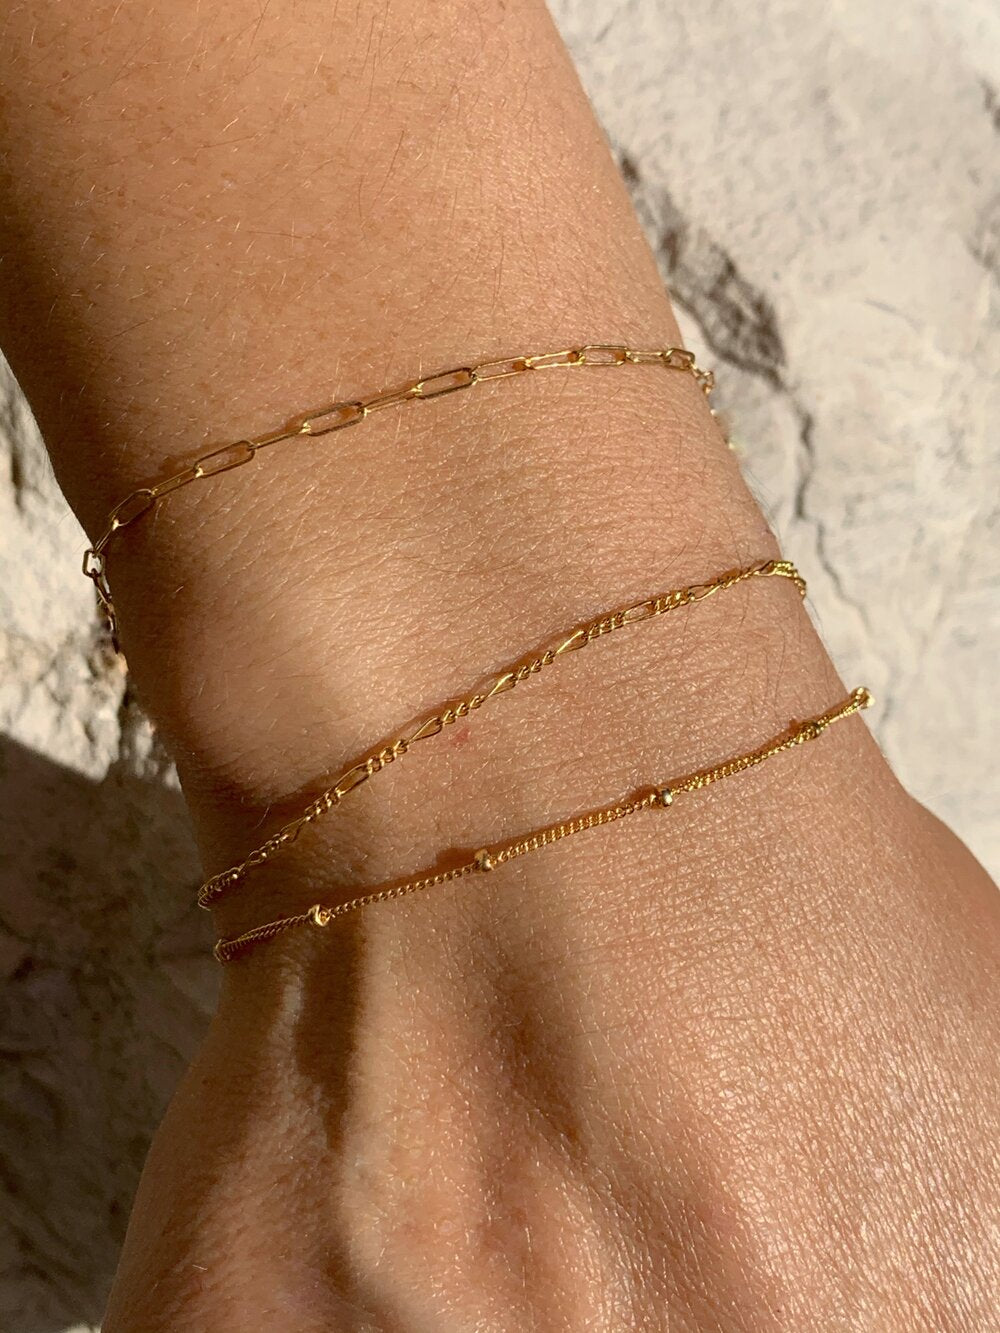 Handmade, gold bracelet. A delicate everyday bracelet. Layer it with your favorite statement pieces, or keep it classic and wear it alone.